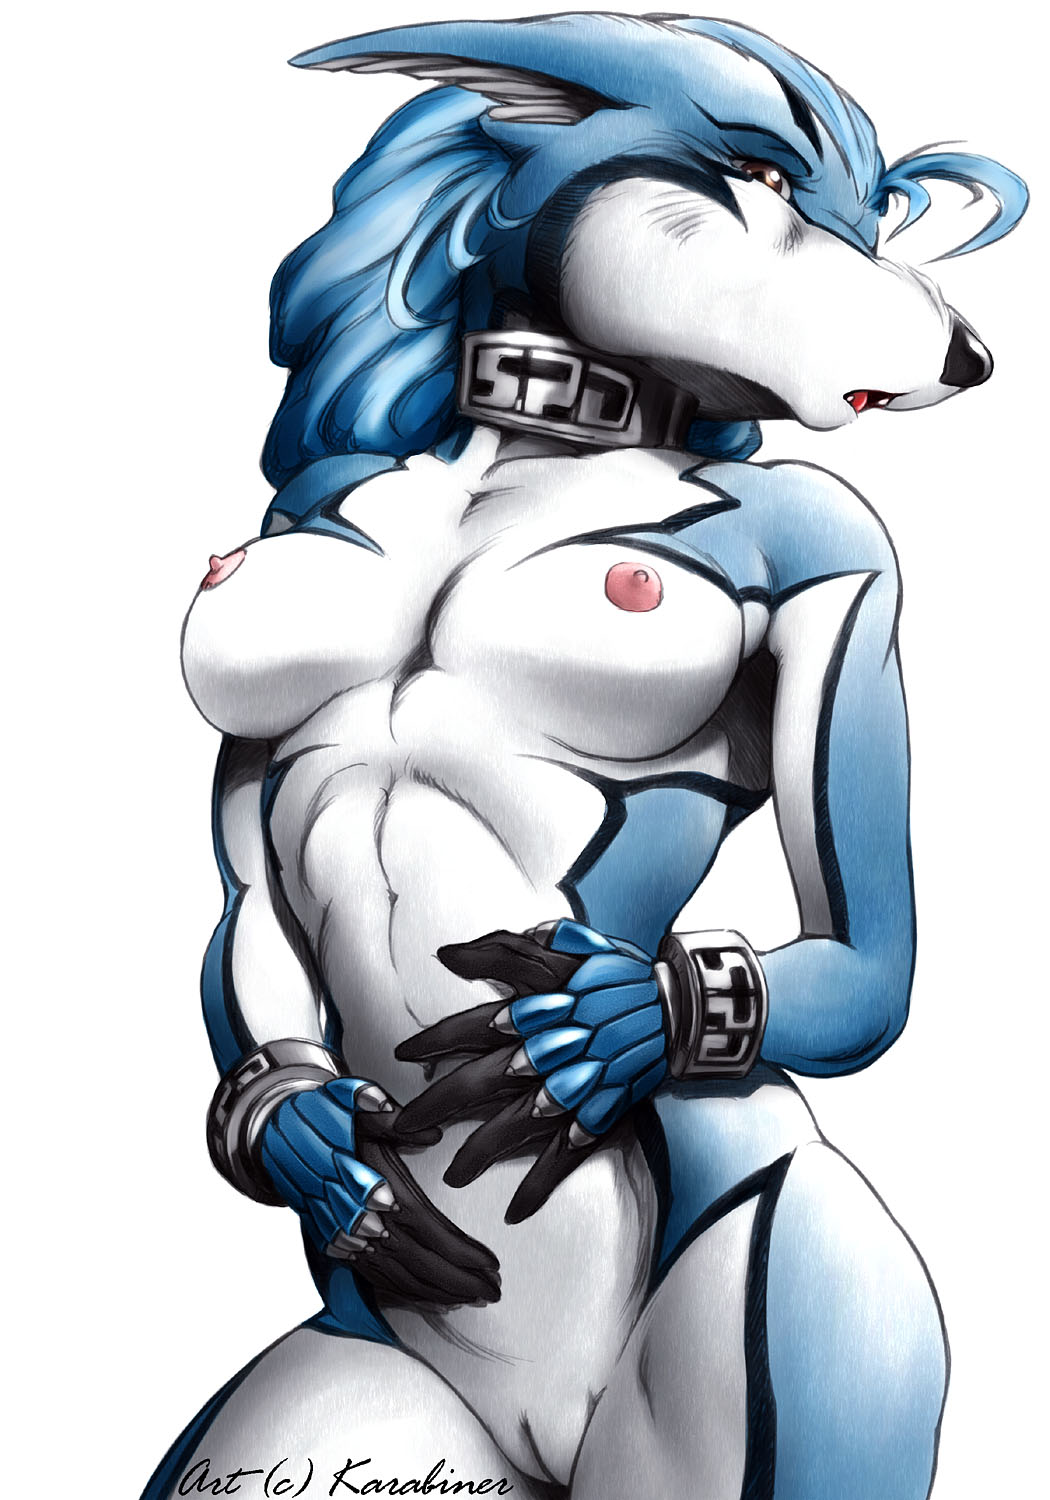 e621 anthro breasts clothing collar countershading crossgender digital_media_(artwork) doggy_kruger female gloves half-length_portrait karabiner mostly_nude nipples pose power_rangers pussy solo